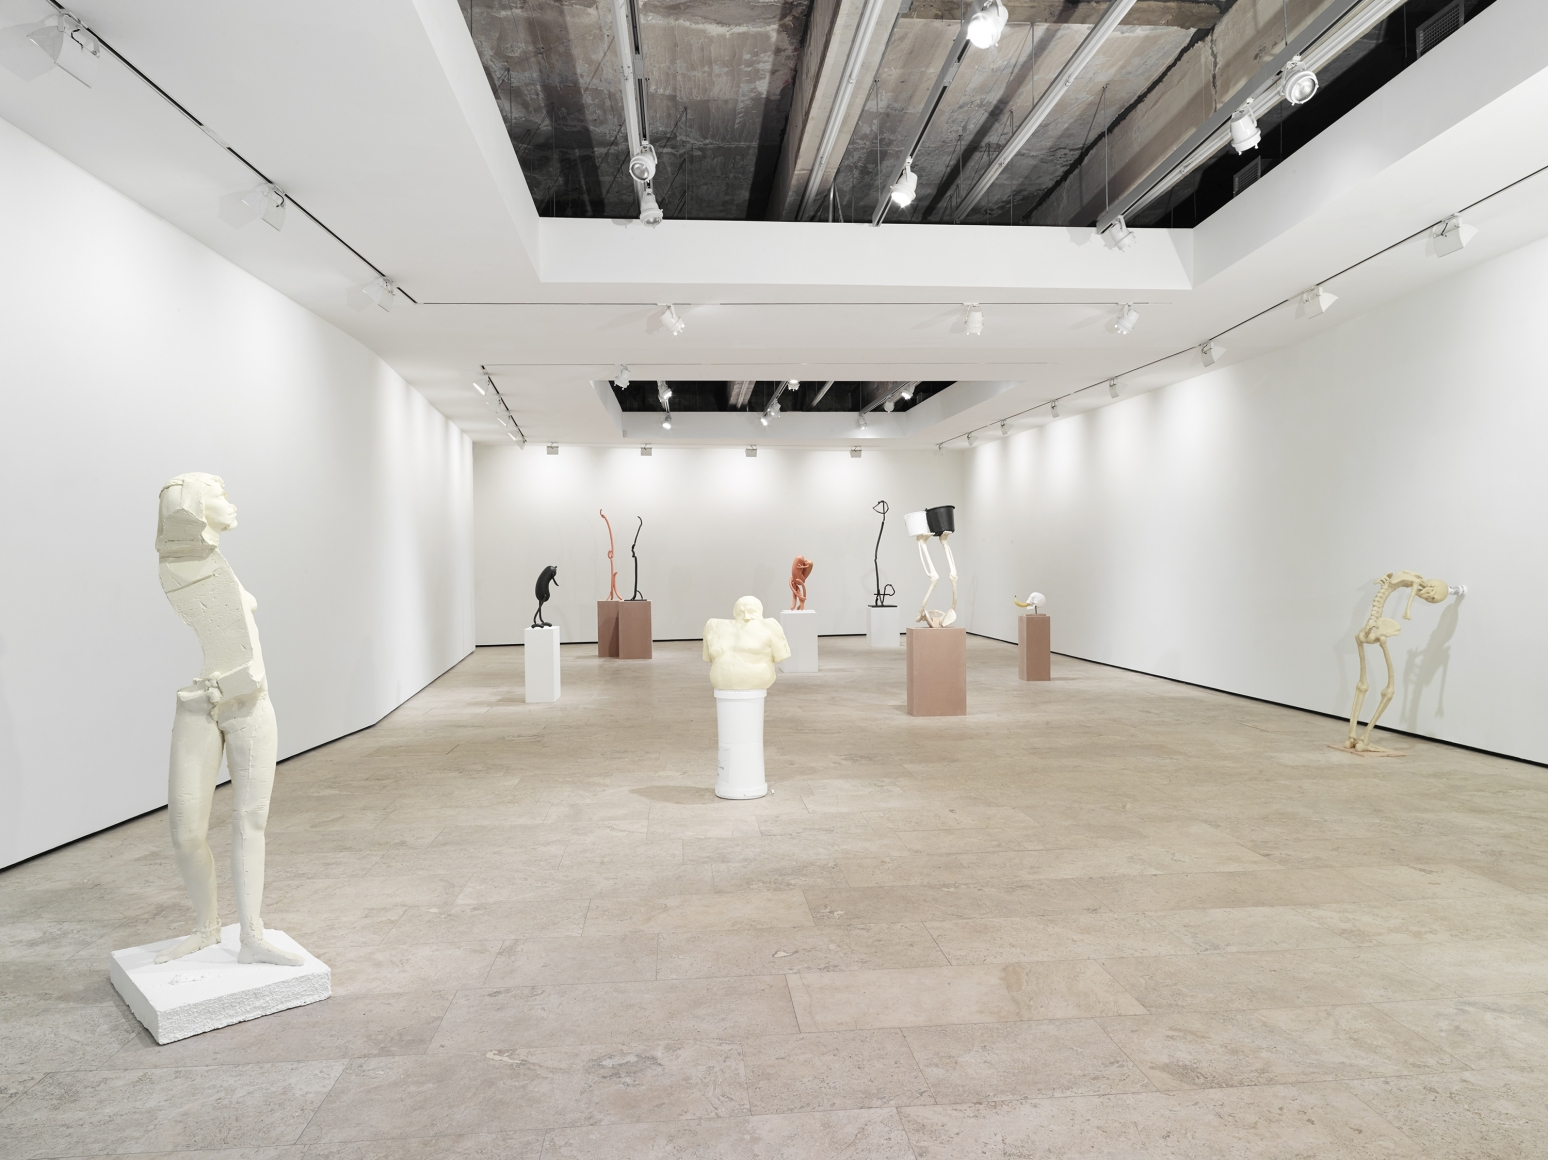 ERWIN WURM, Synthesa, Installation view